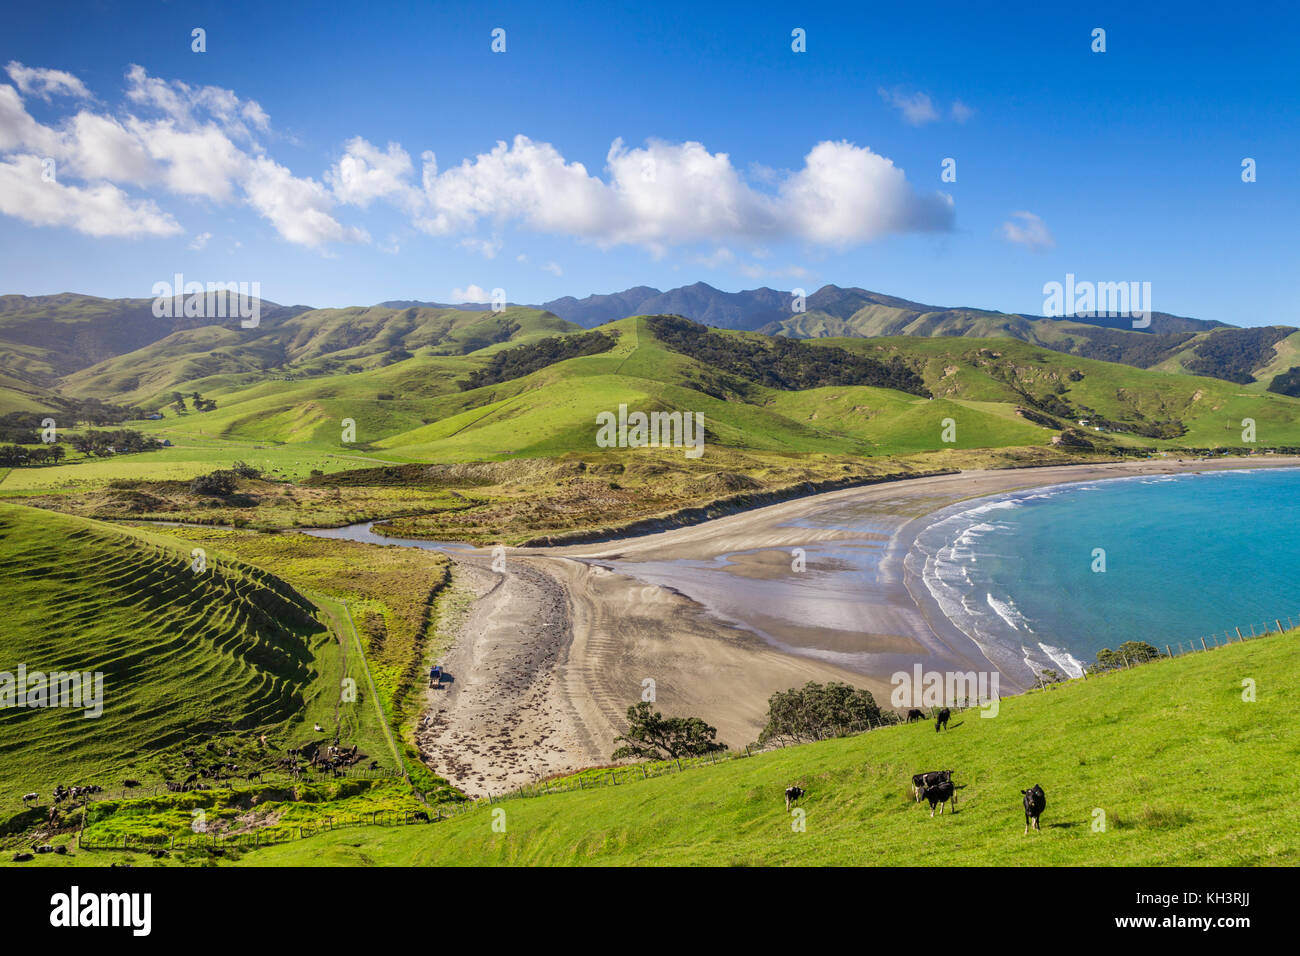 The rolling green hills of the Coromandel Peninsula at Port Jackson, New Zealand. - Stock Image